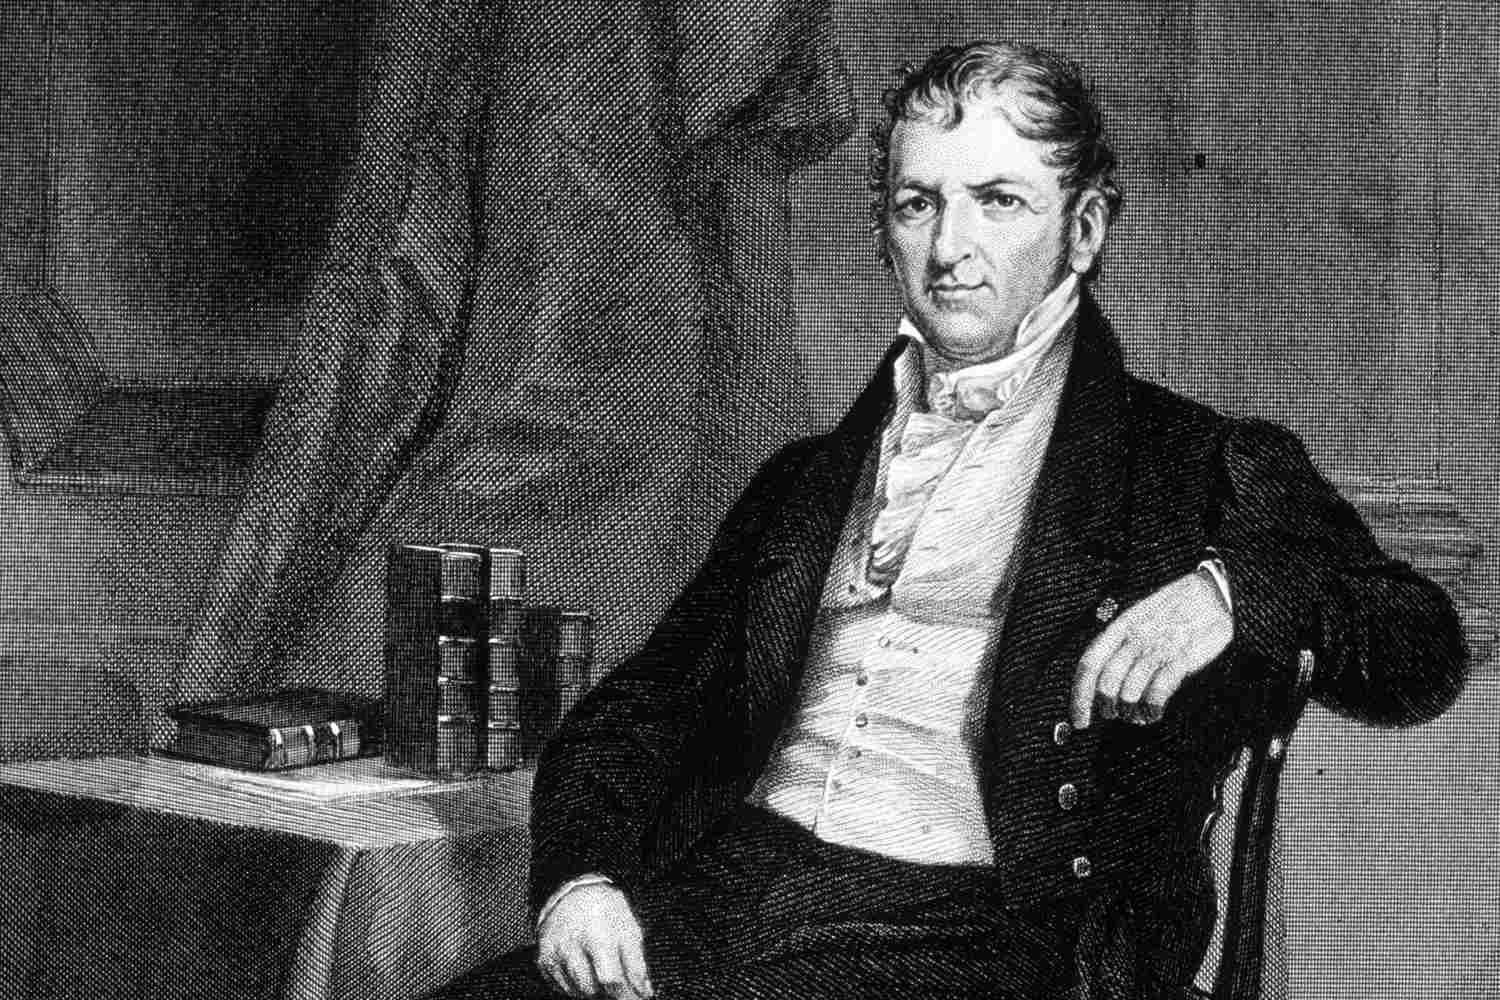 Pencil drawing of Eli Whitney.